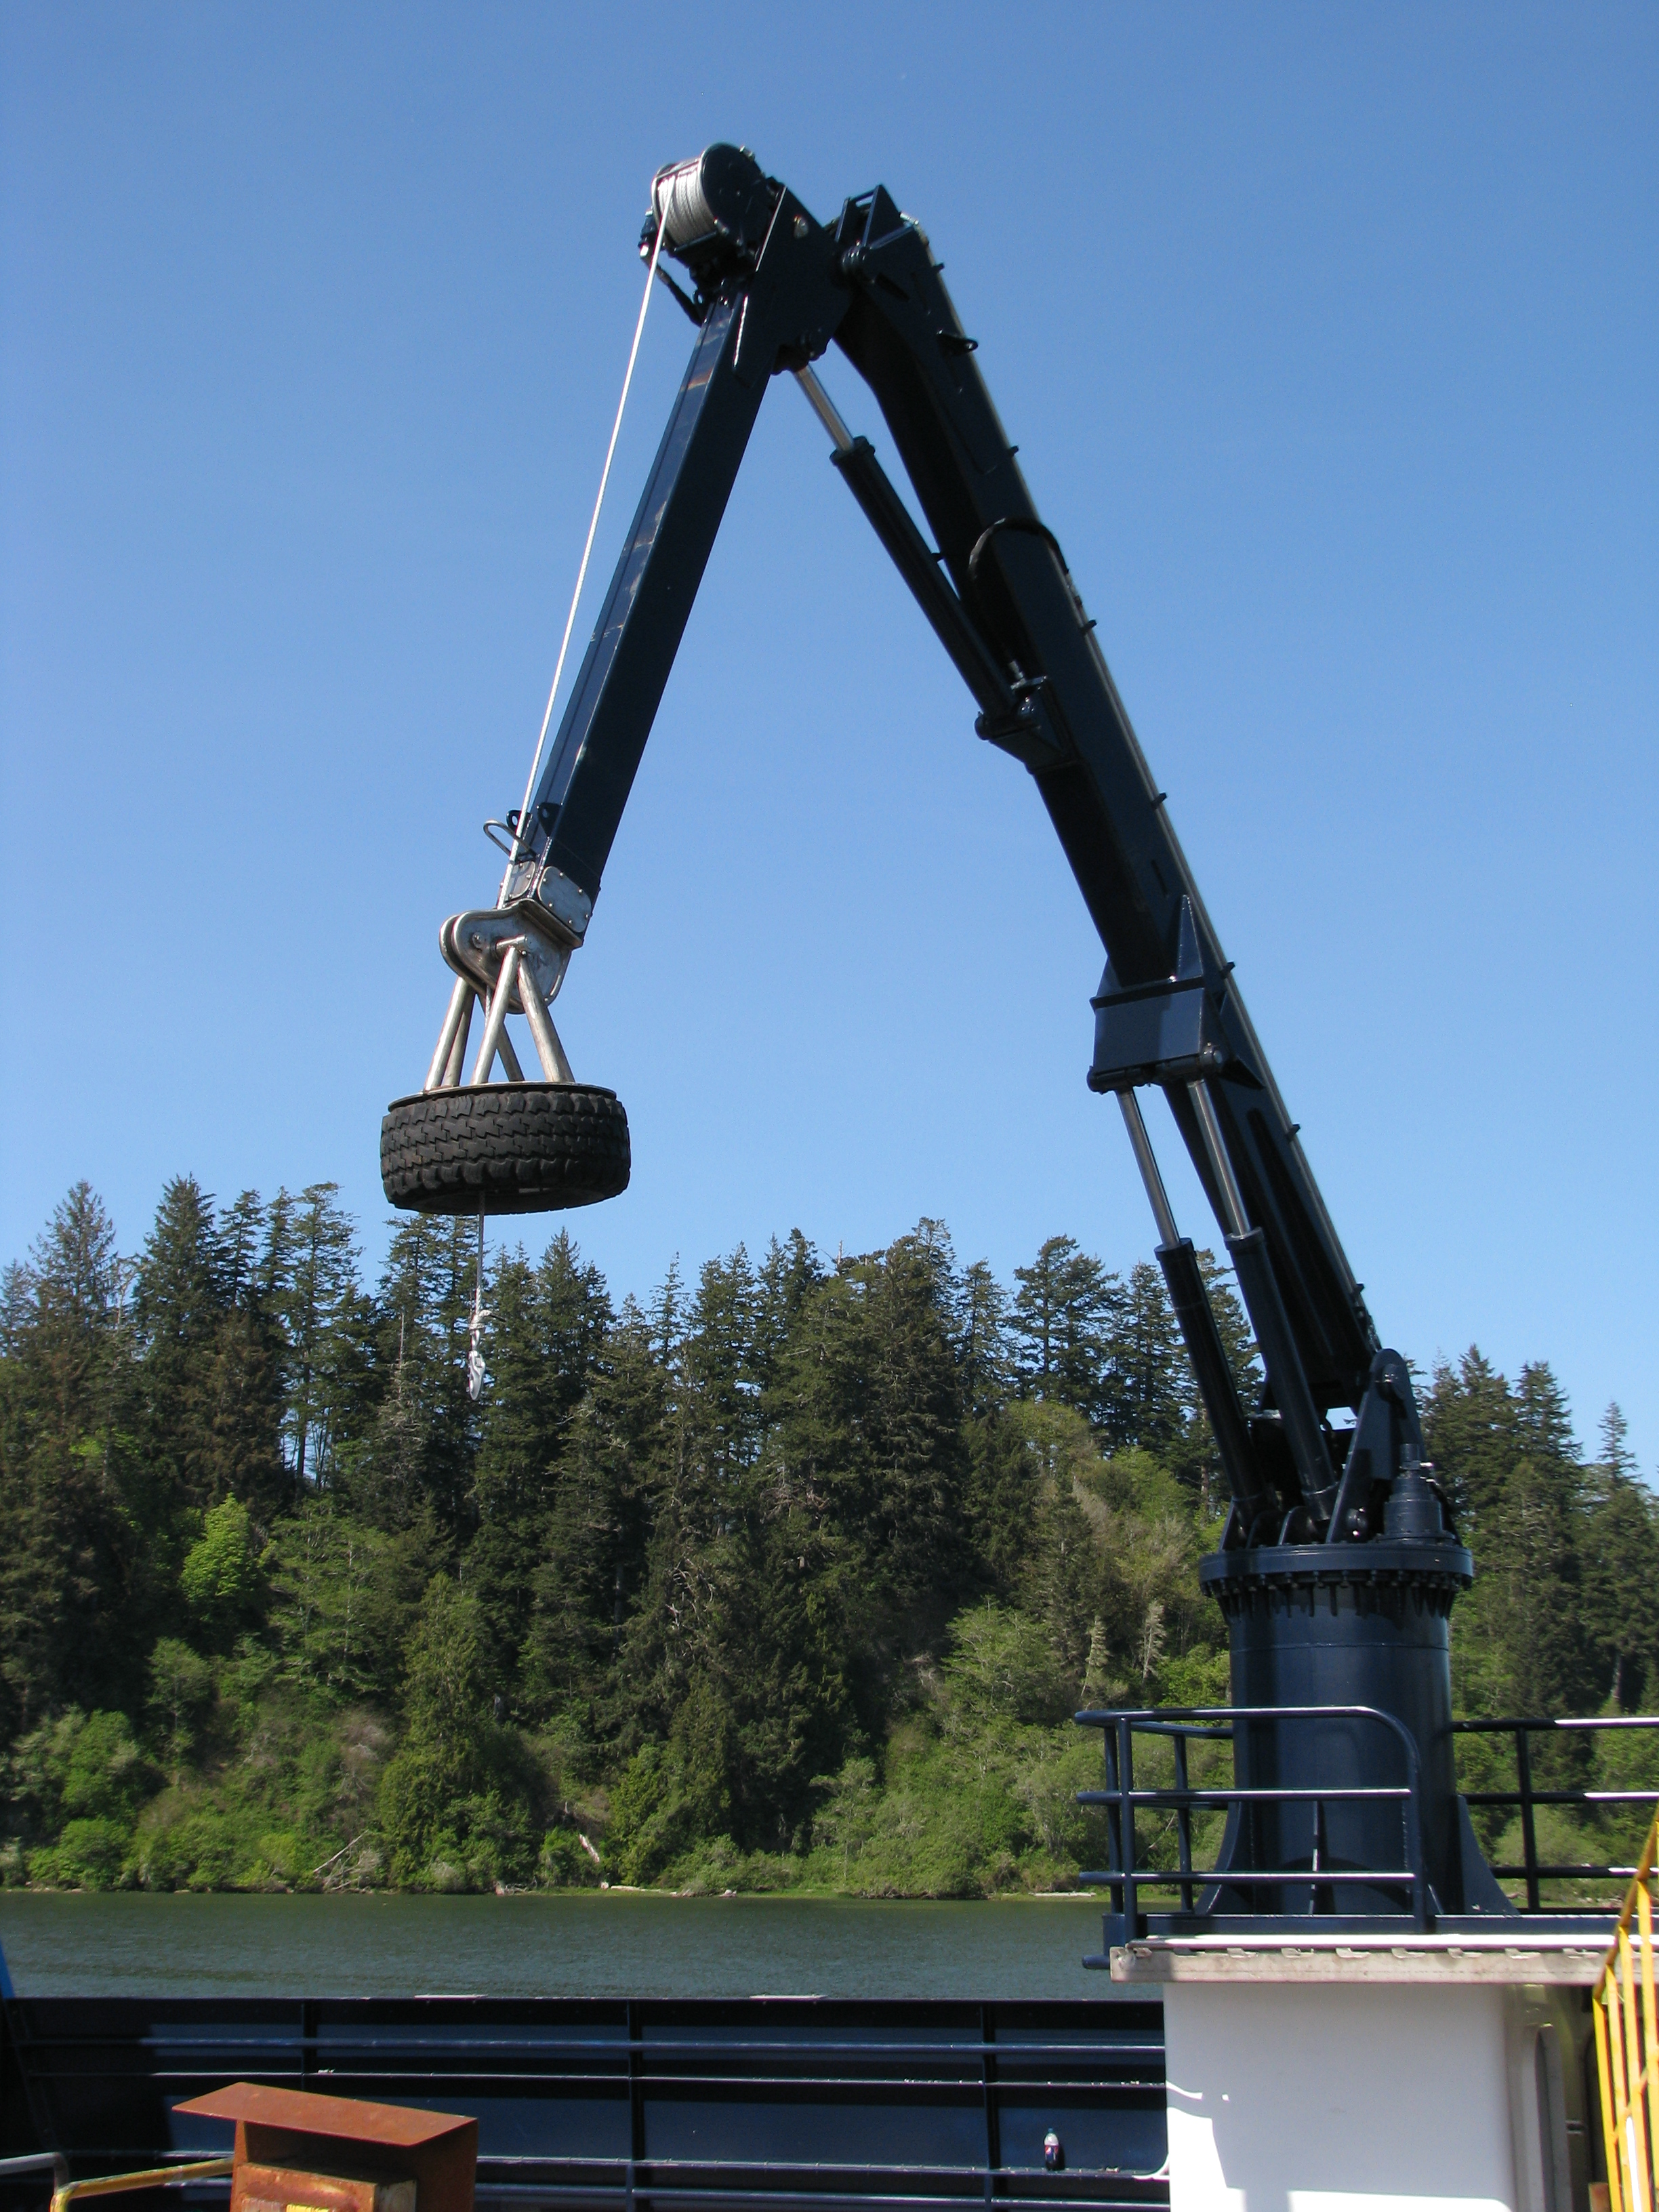 38-FOOT KNUCKLE CRANE | DECK CRANE